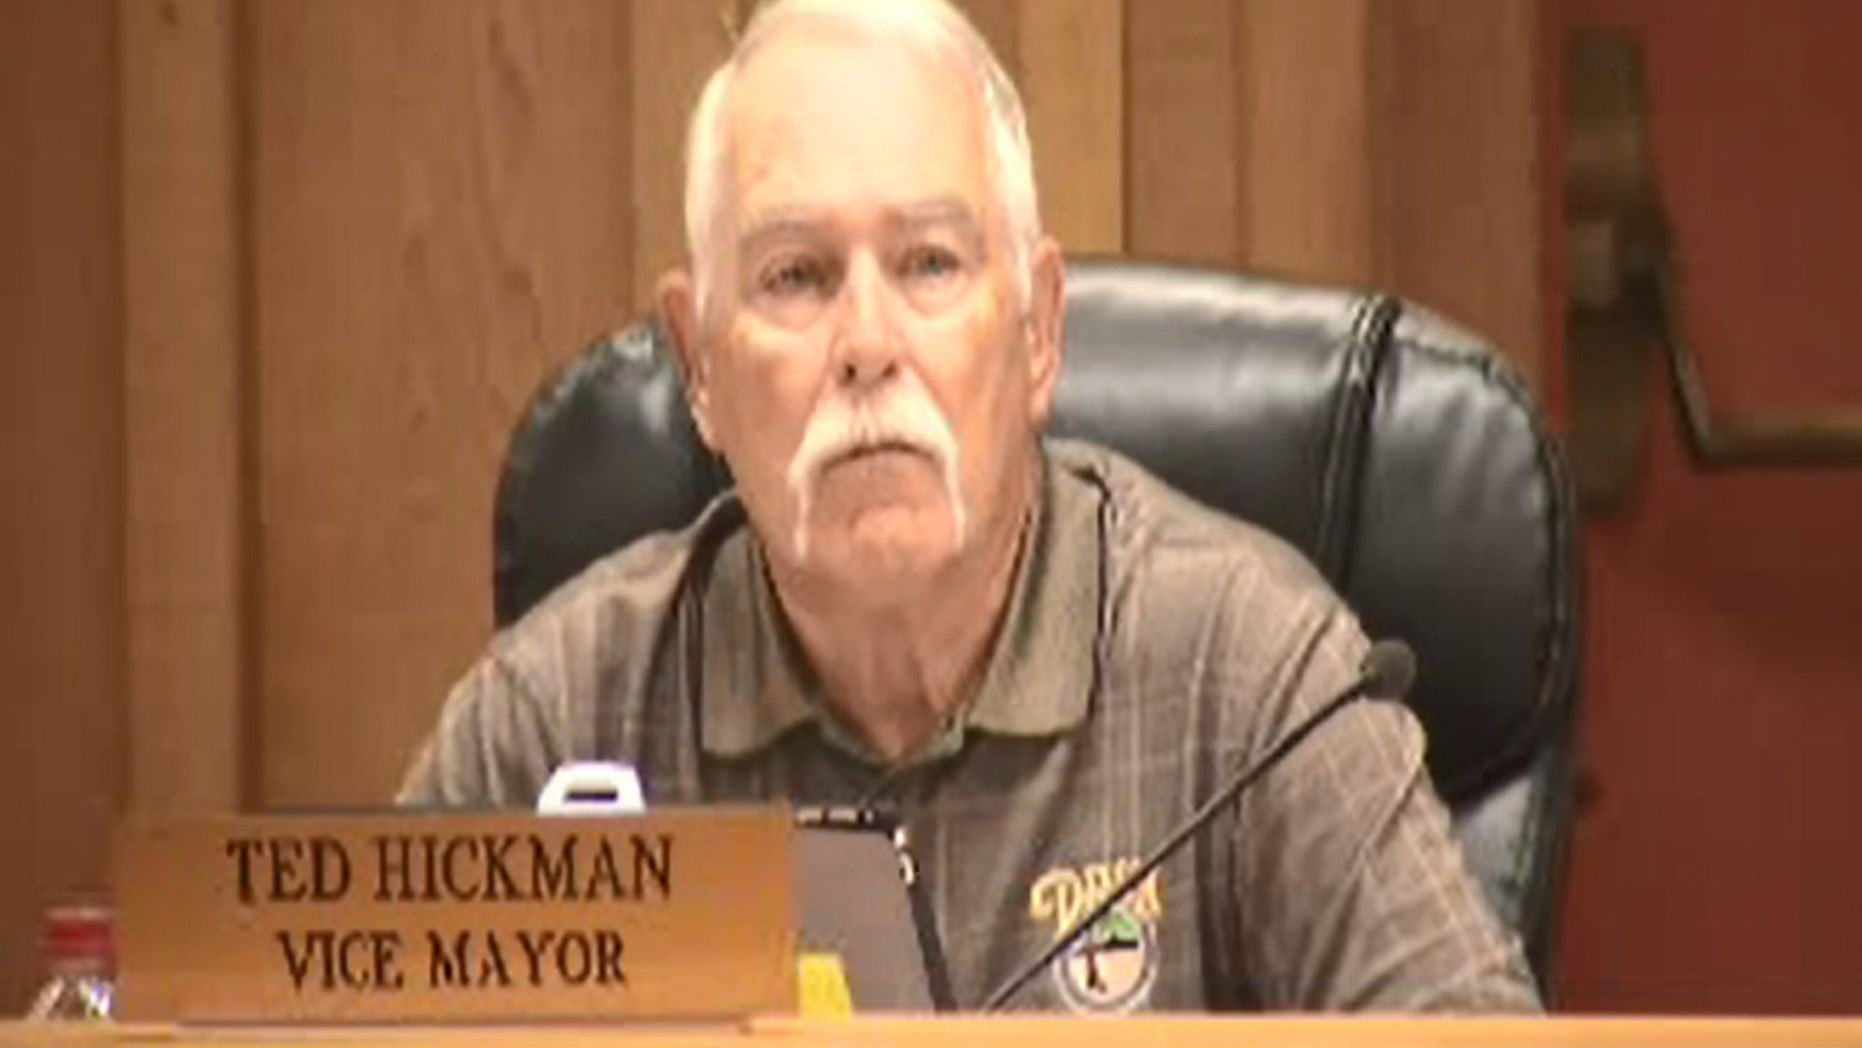 Ted Hickman, 74, vice mayor of Dixon, Calif., attended a city council meeting Tuesday where protesters called for his resignation after a newspaper column he wrote drew negative reactions.